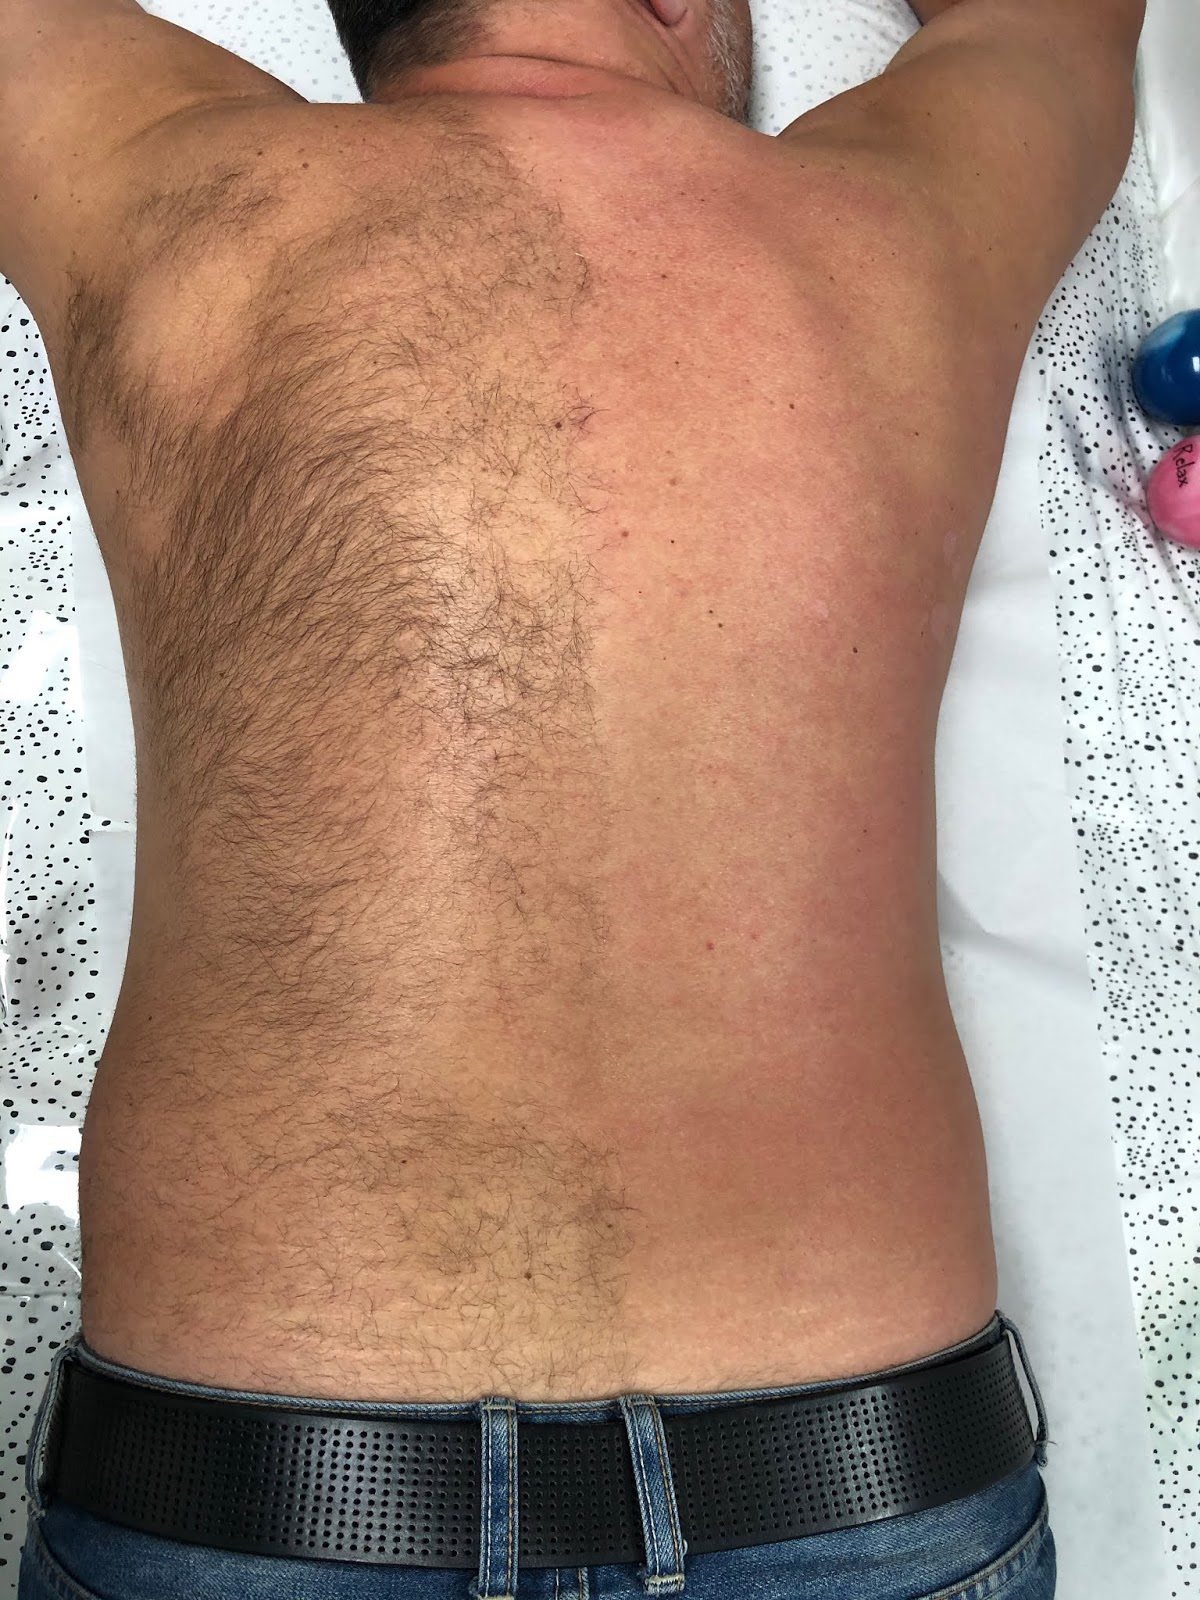 Back Waxing for men: is it worth it?